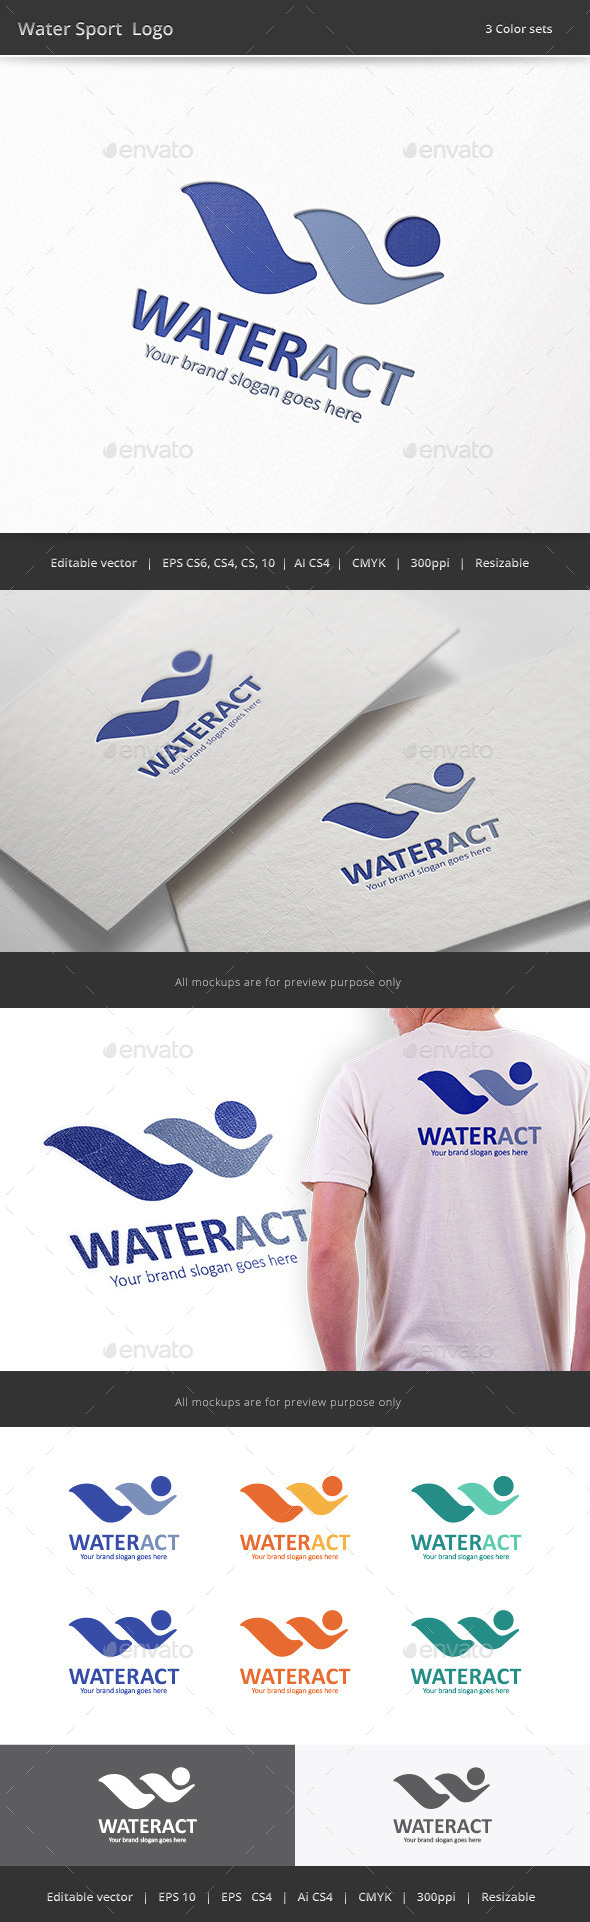 Water Sport Logo - Vector Abstract